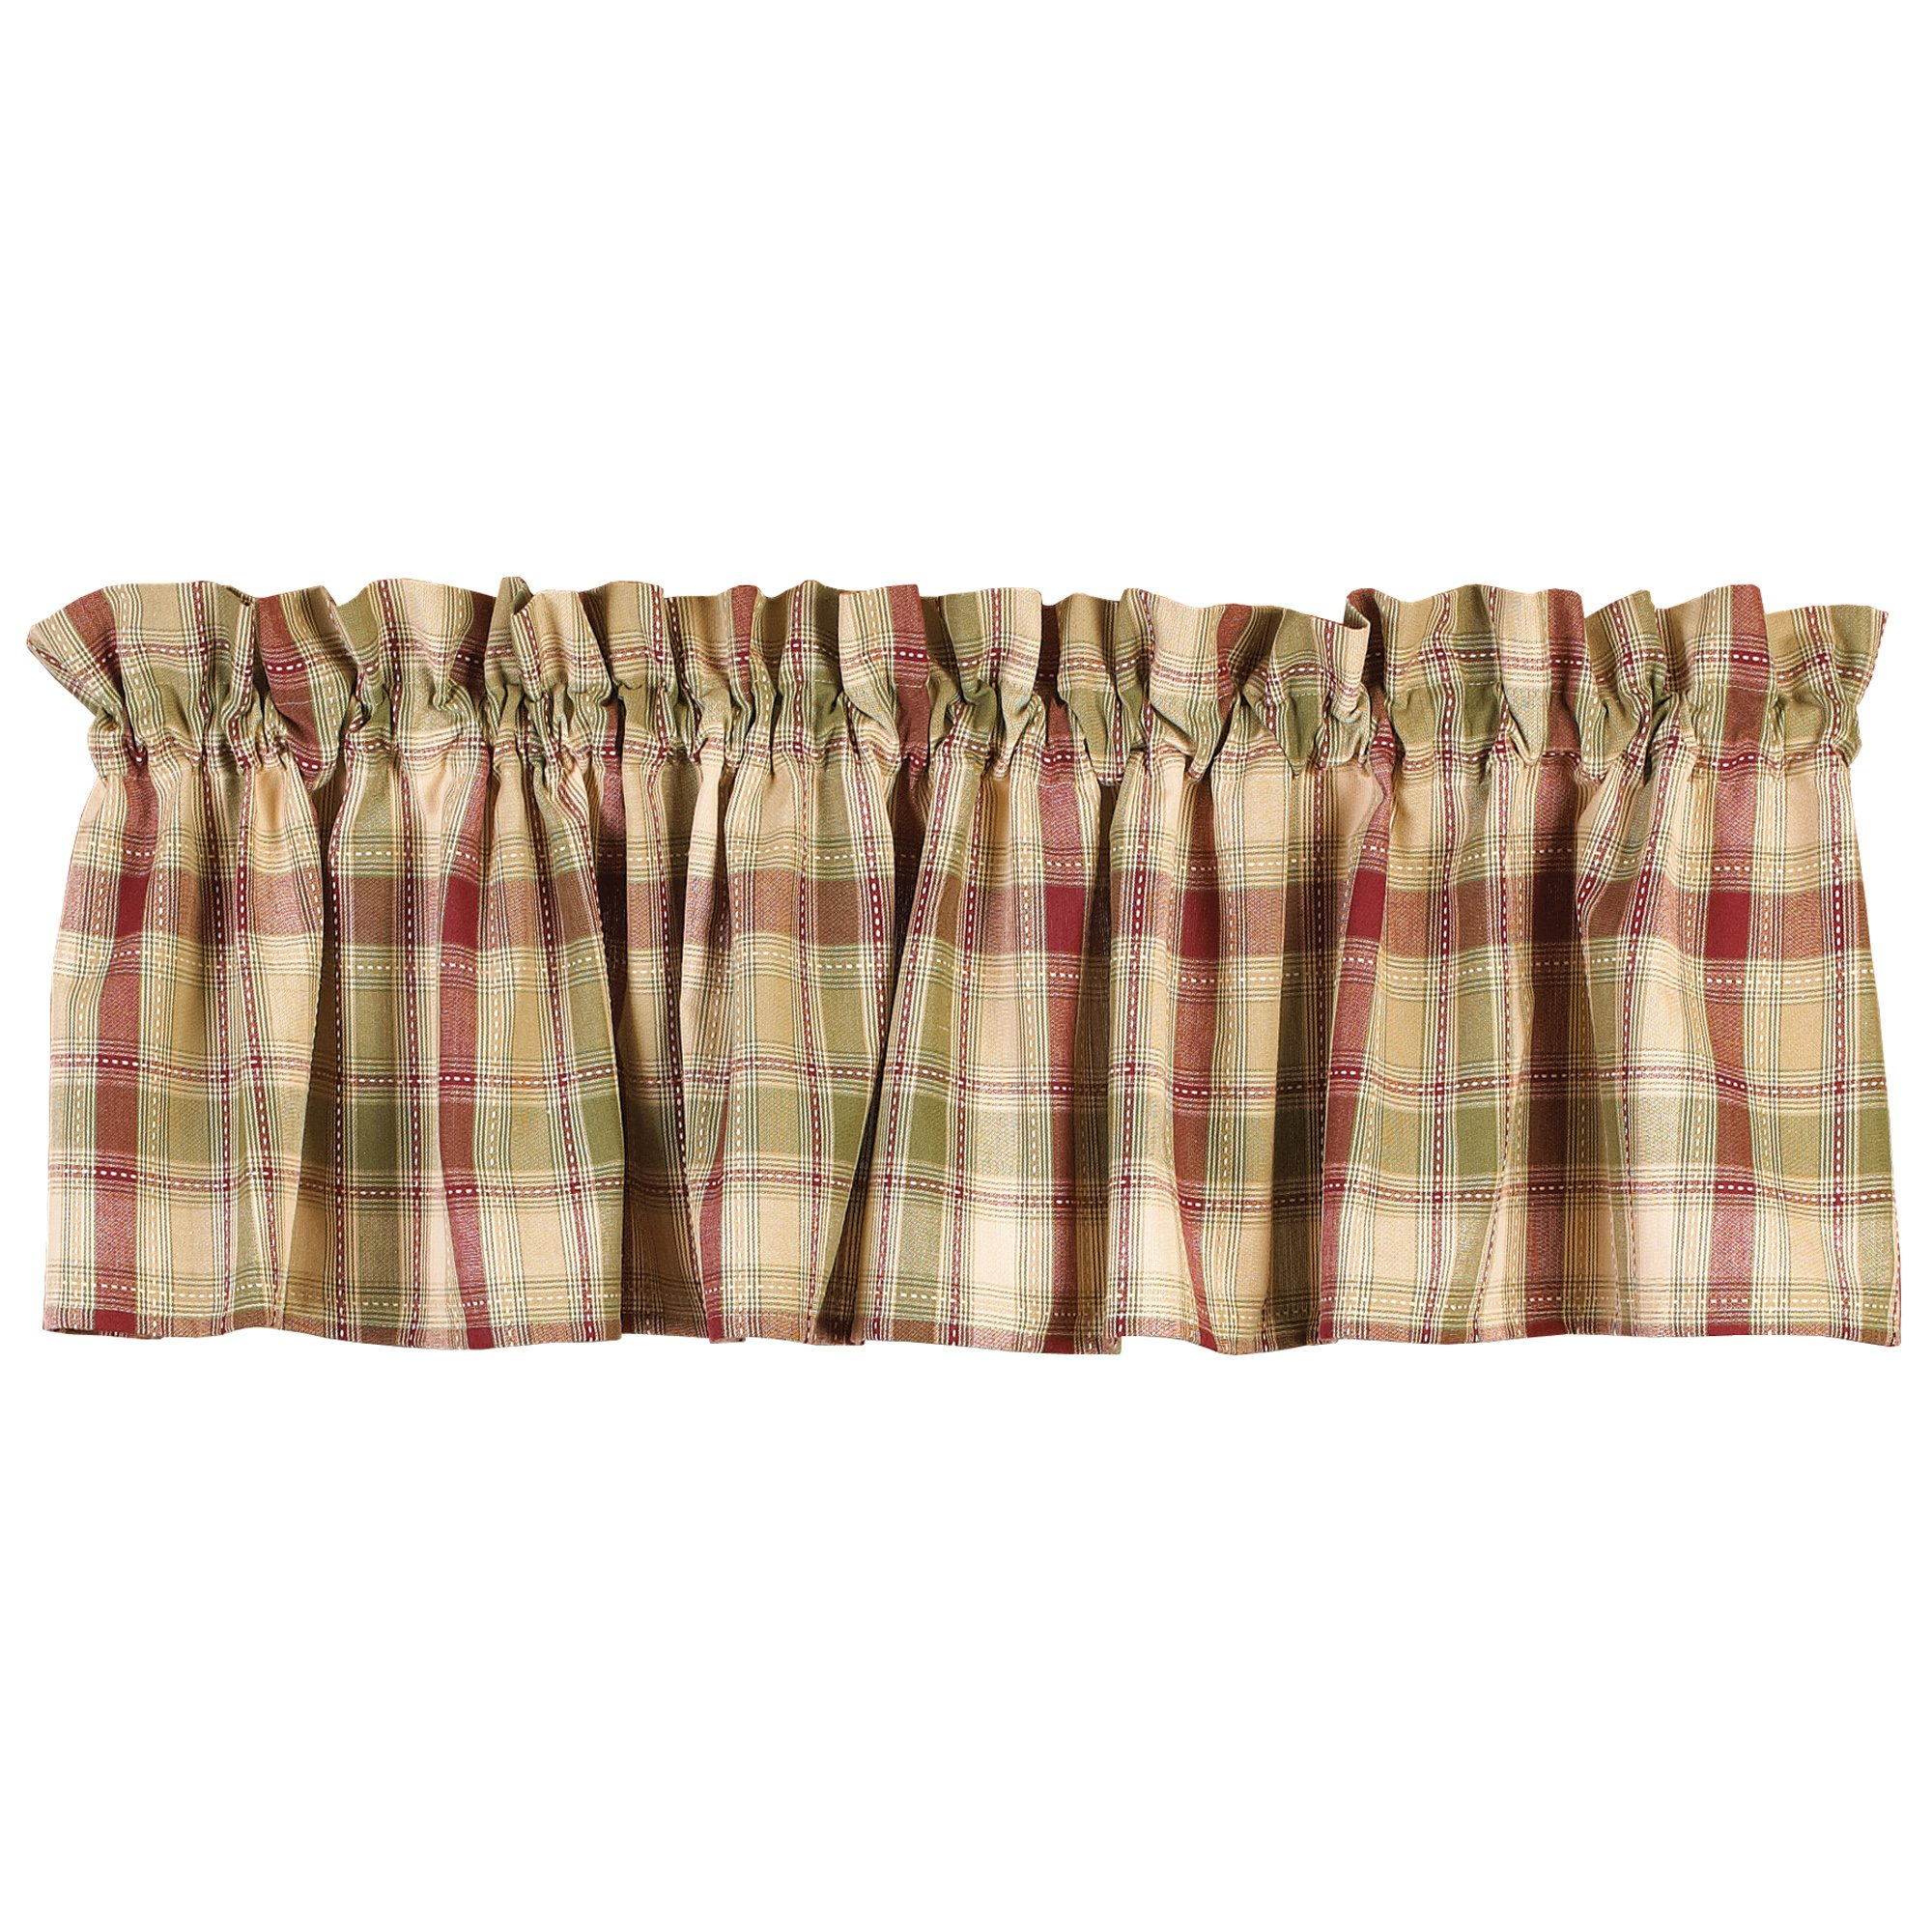 Country House Brandywine Burgundy Sage Green Tan Plaid Valance 72'' x 14''